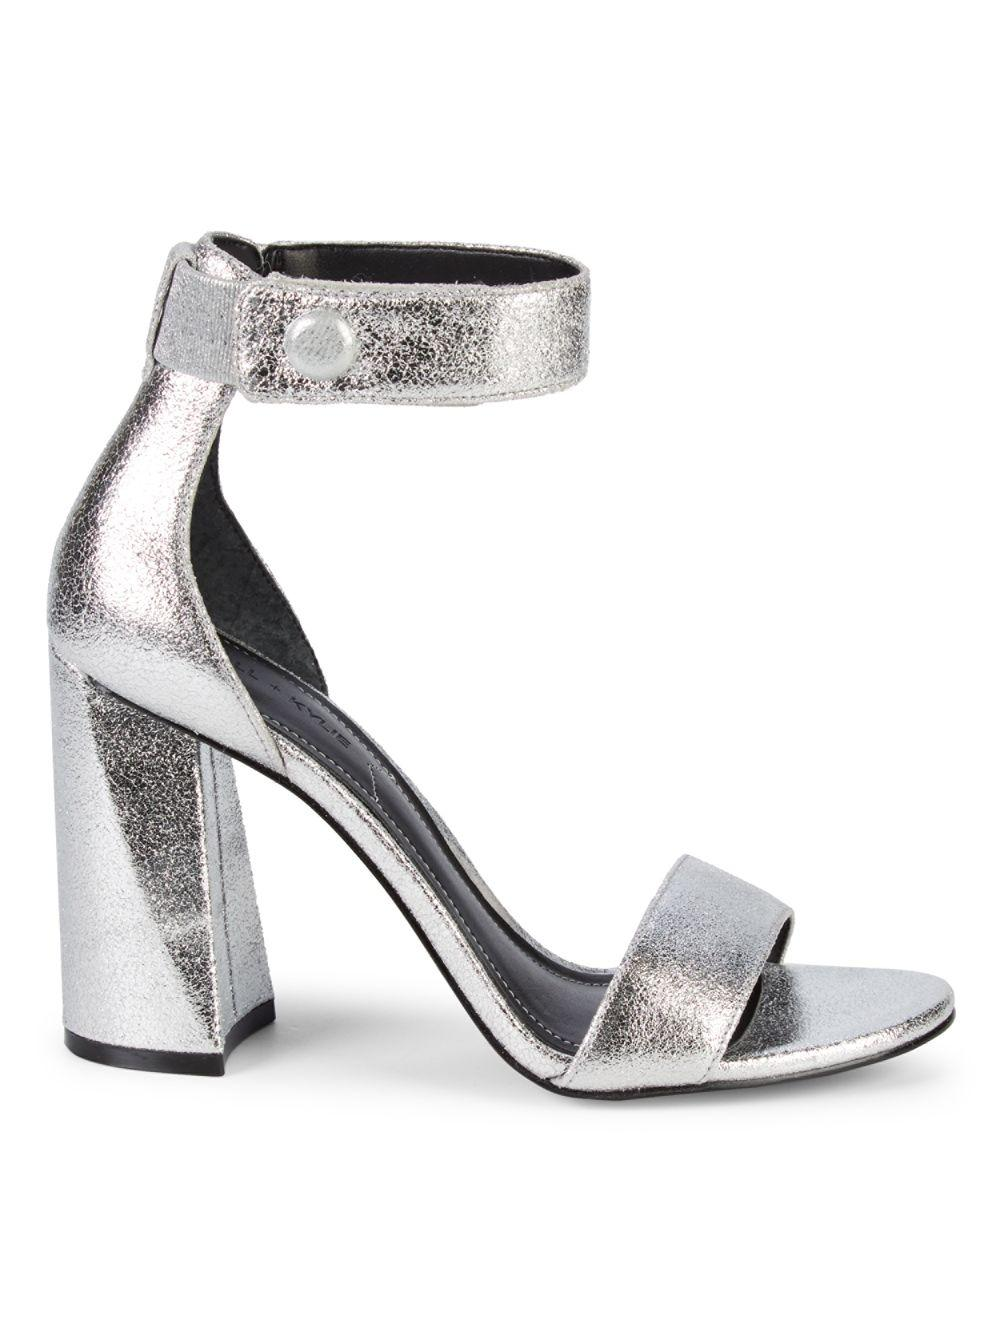 37bfb76c026 Lyst - Kendall + Kylie Jewel Heeled Sandals in Metallic